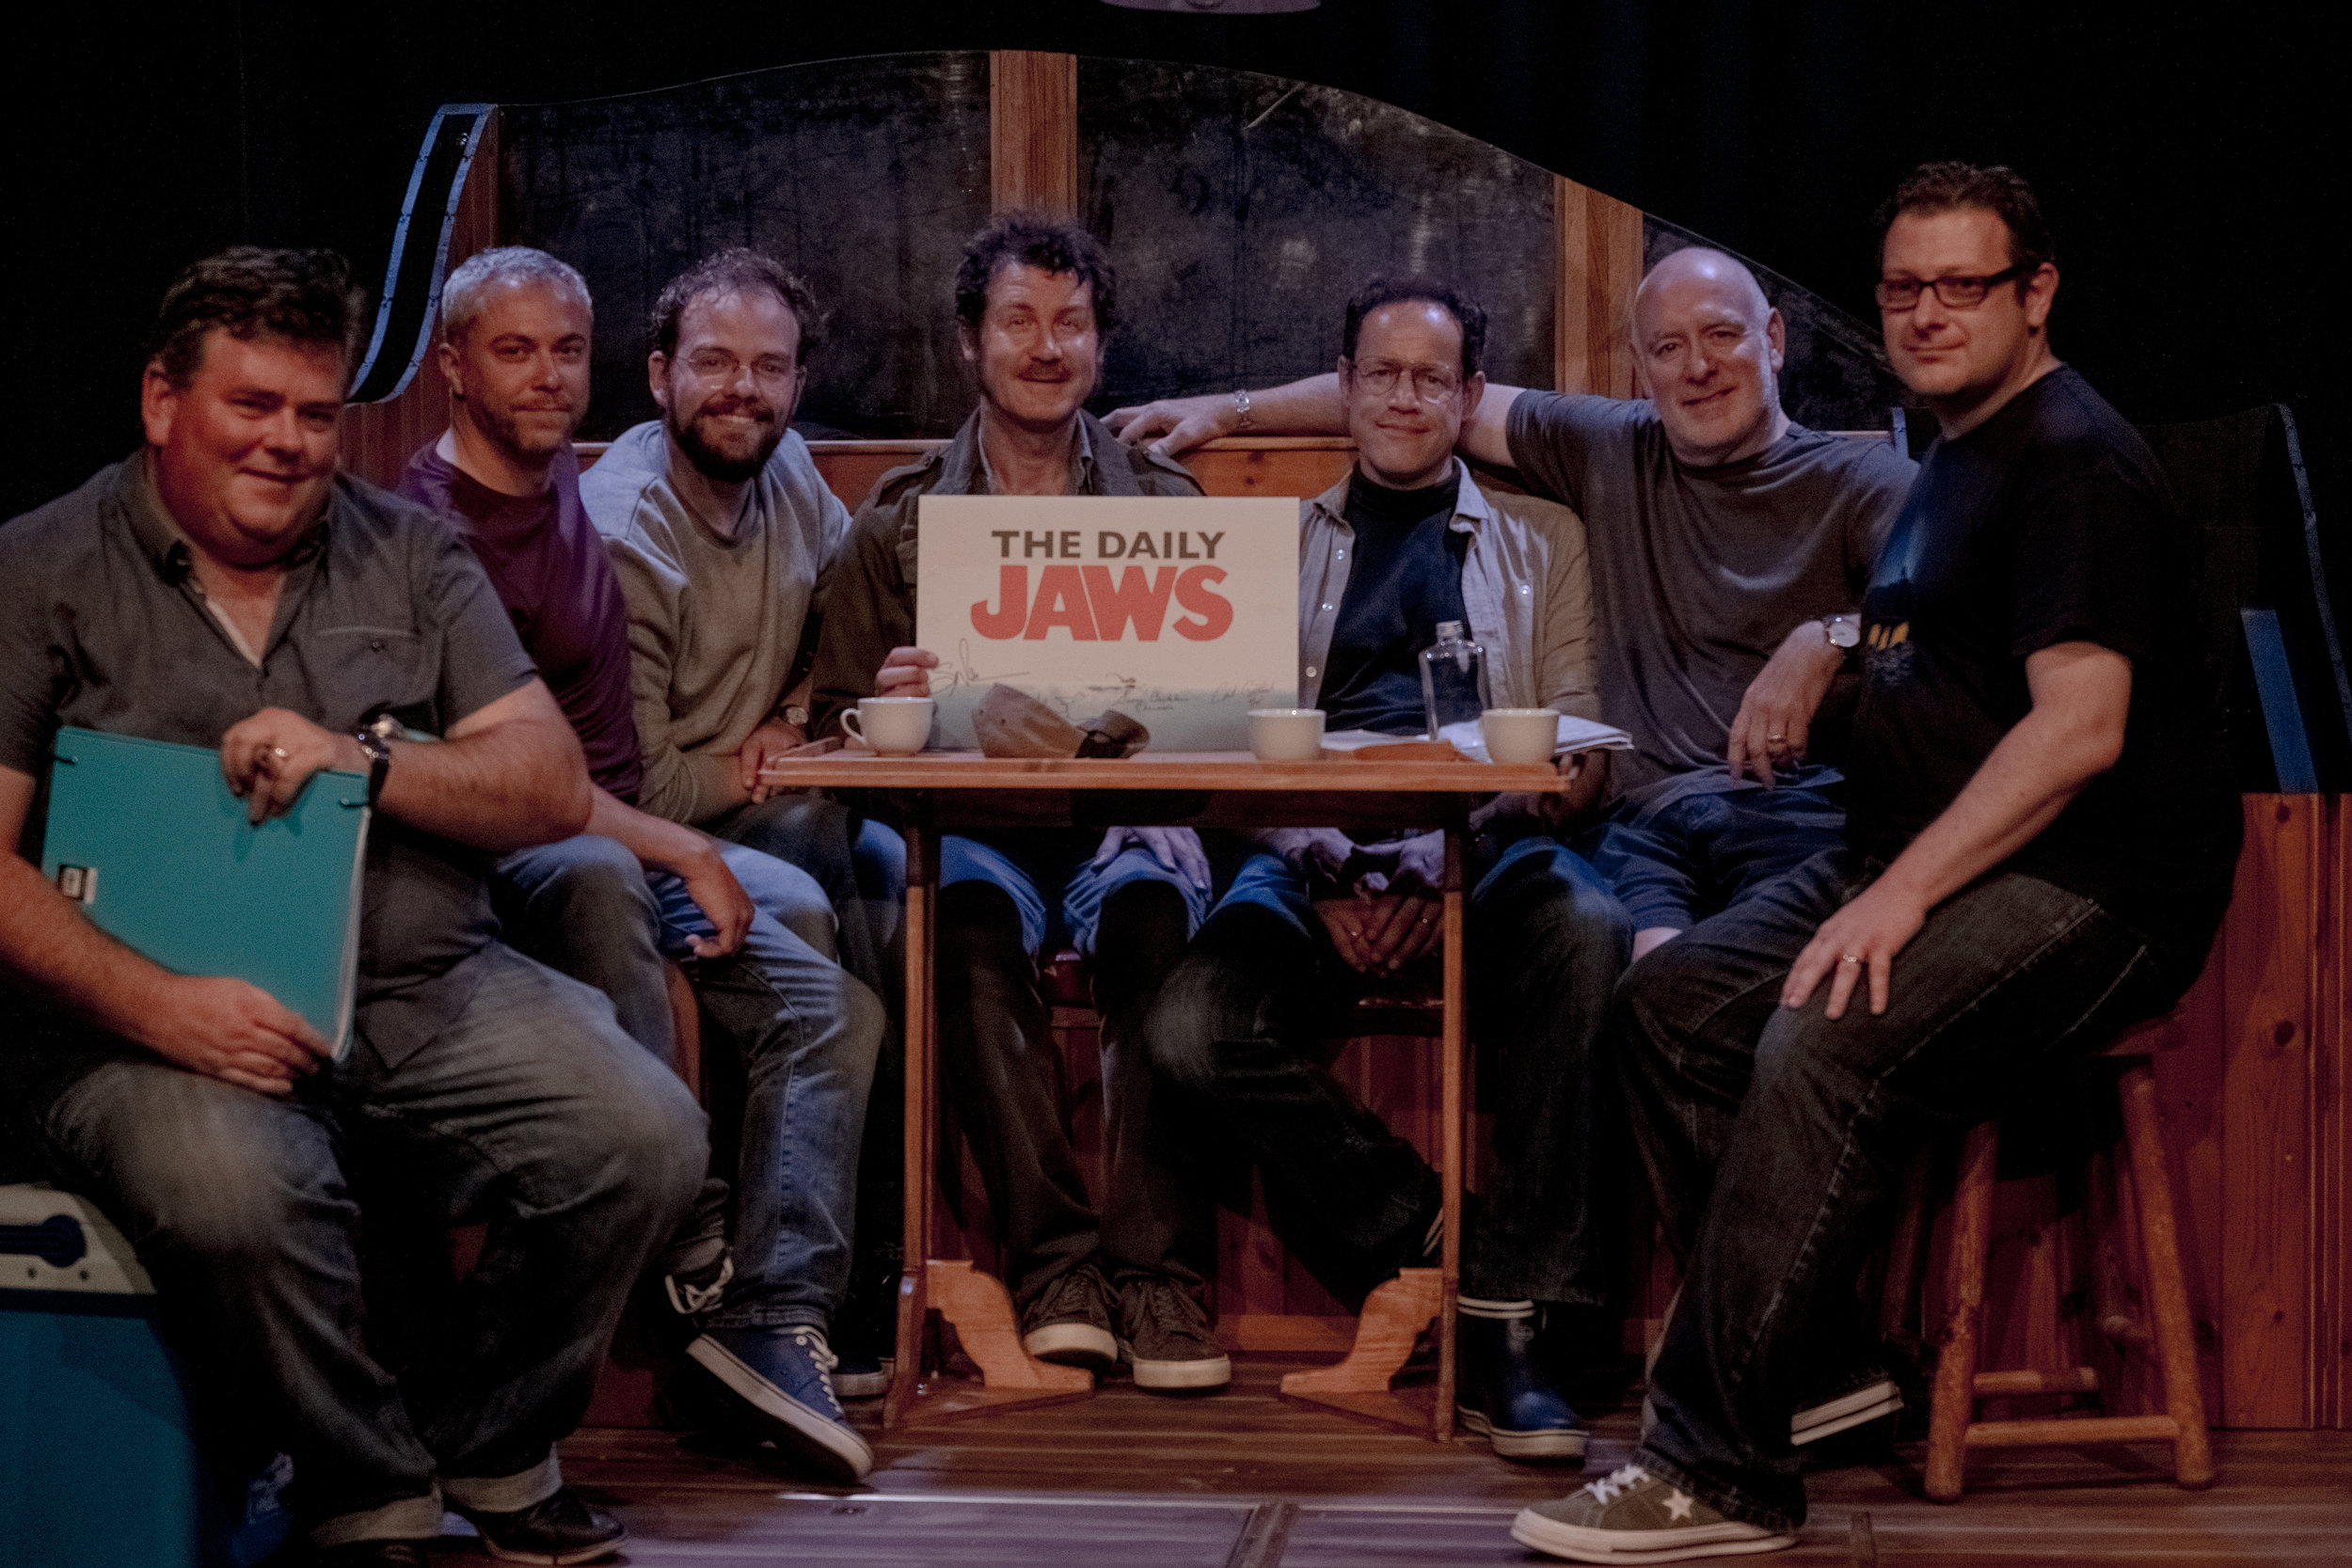 L-R Producer David Mounfield, TDJ creator Ross, actors Liam Murray Scott, ian Shaw and Duncan Henderson, Director Guy Masterson and TDJ chief writer Dean.